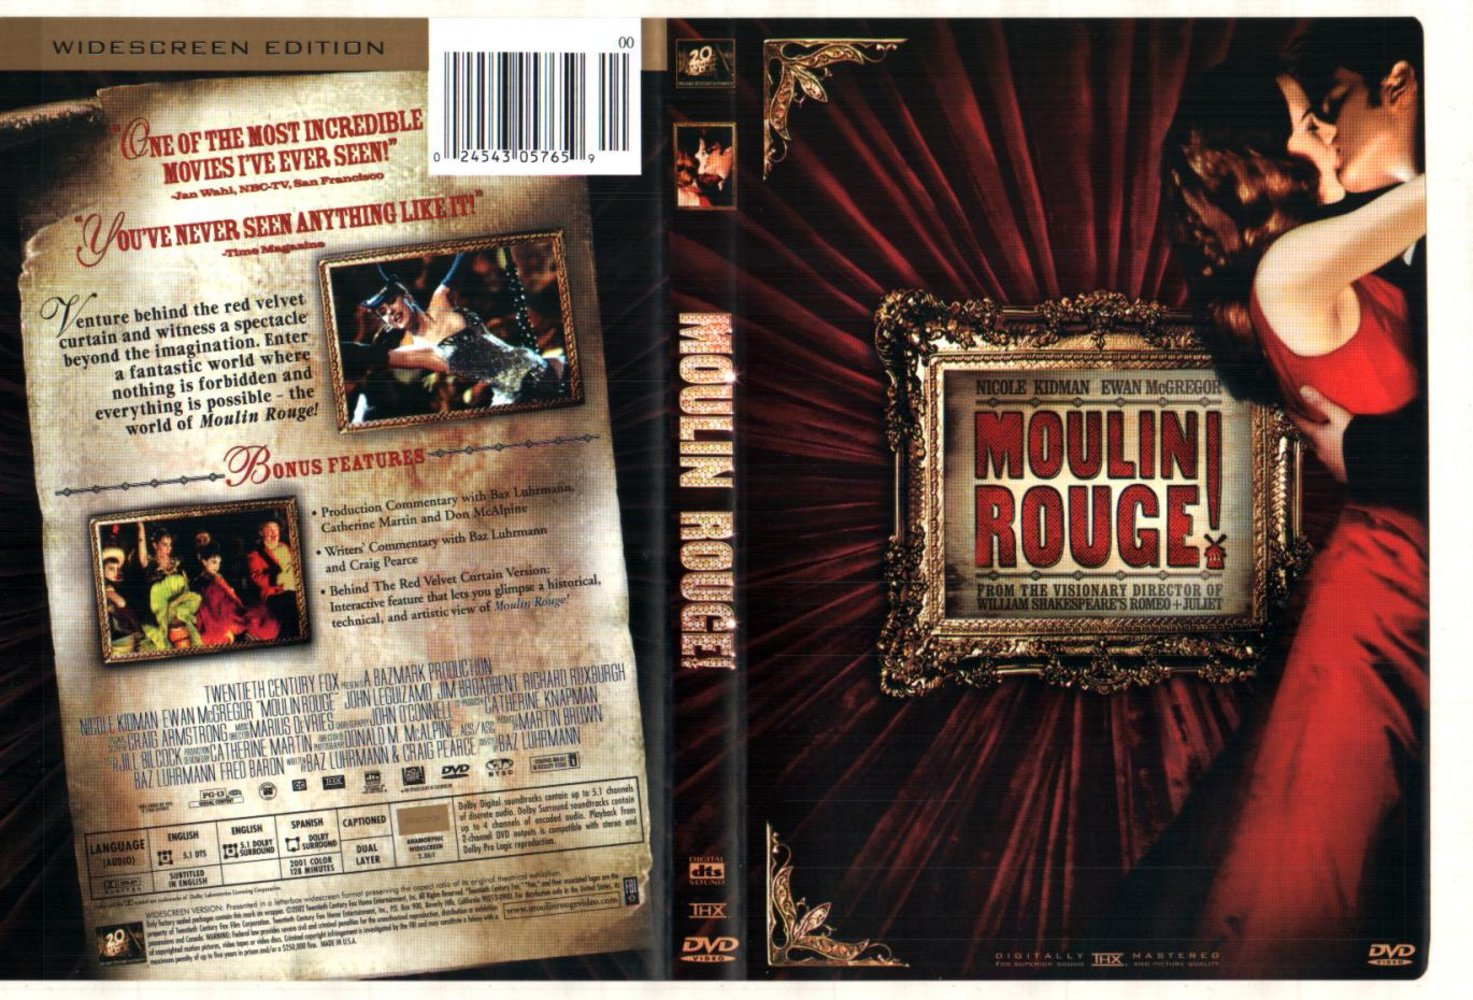 moulin_rouge_wide_screen_edition-cdcovers_cc-front